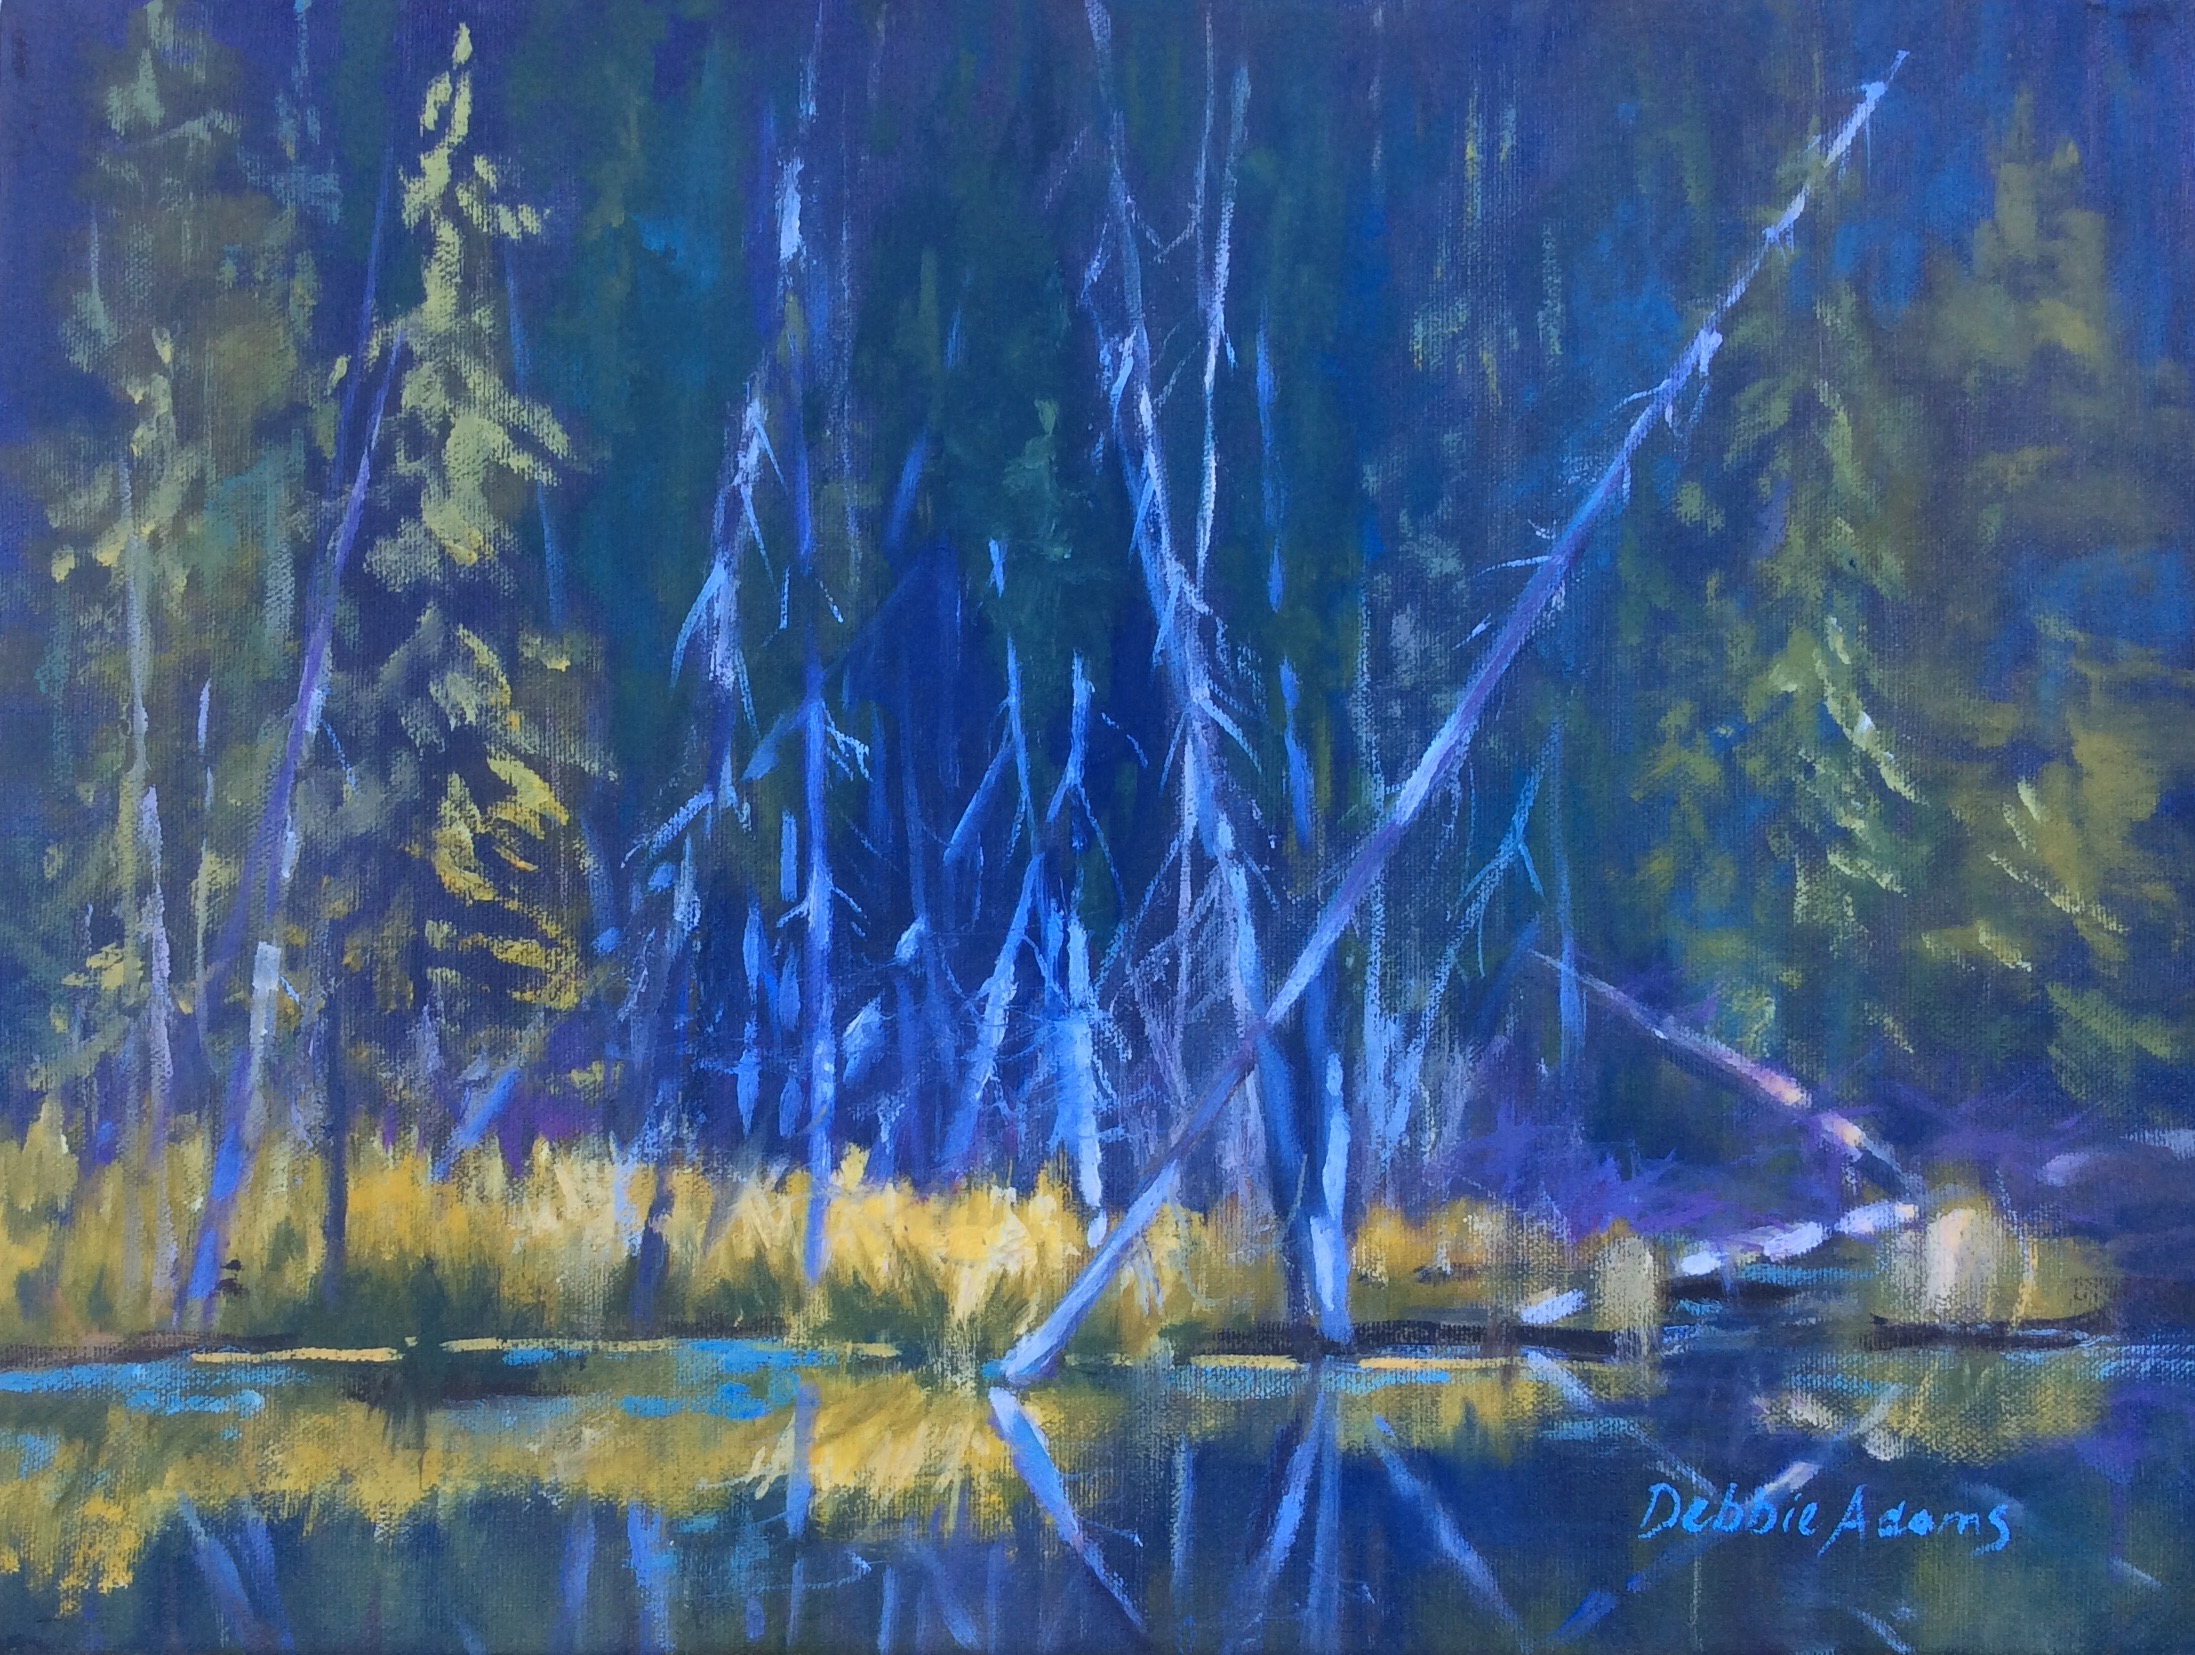 Evening at the Beaver Ponds 11x14 Oil